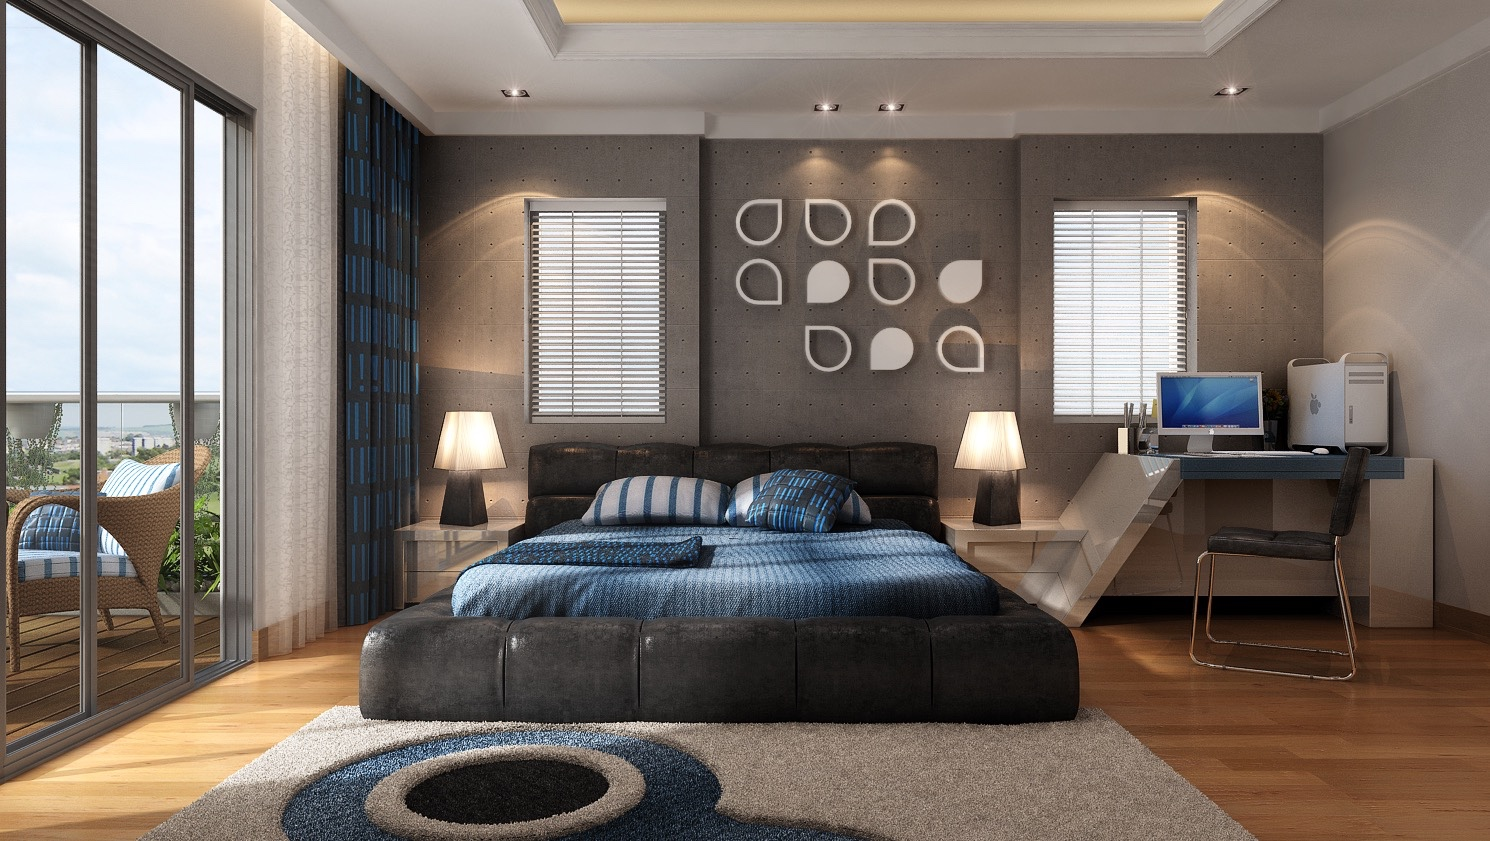 21 cool bedrooms for clean and simple design inspiration for Best bedroom design ideas